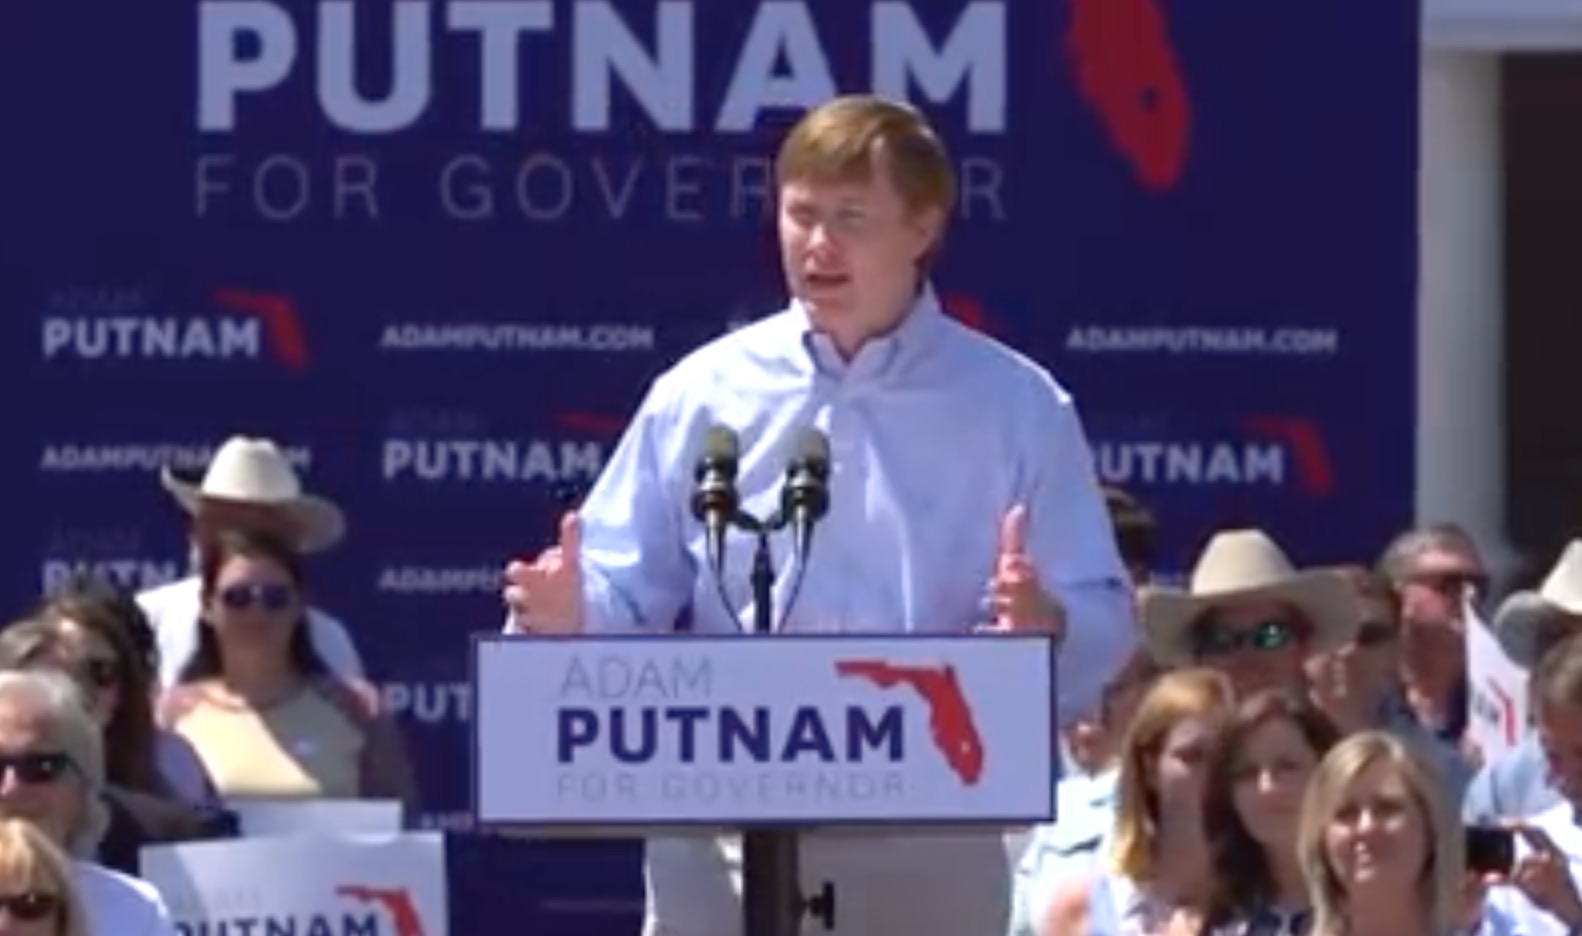 Like Trump, Putnam wants to overhaul NAFTA